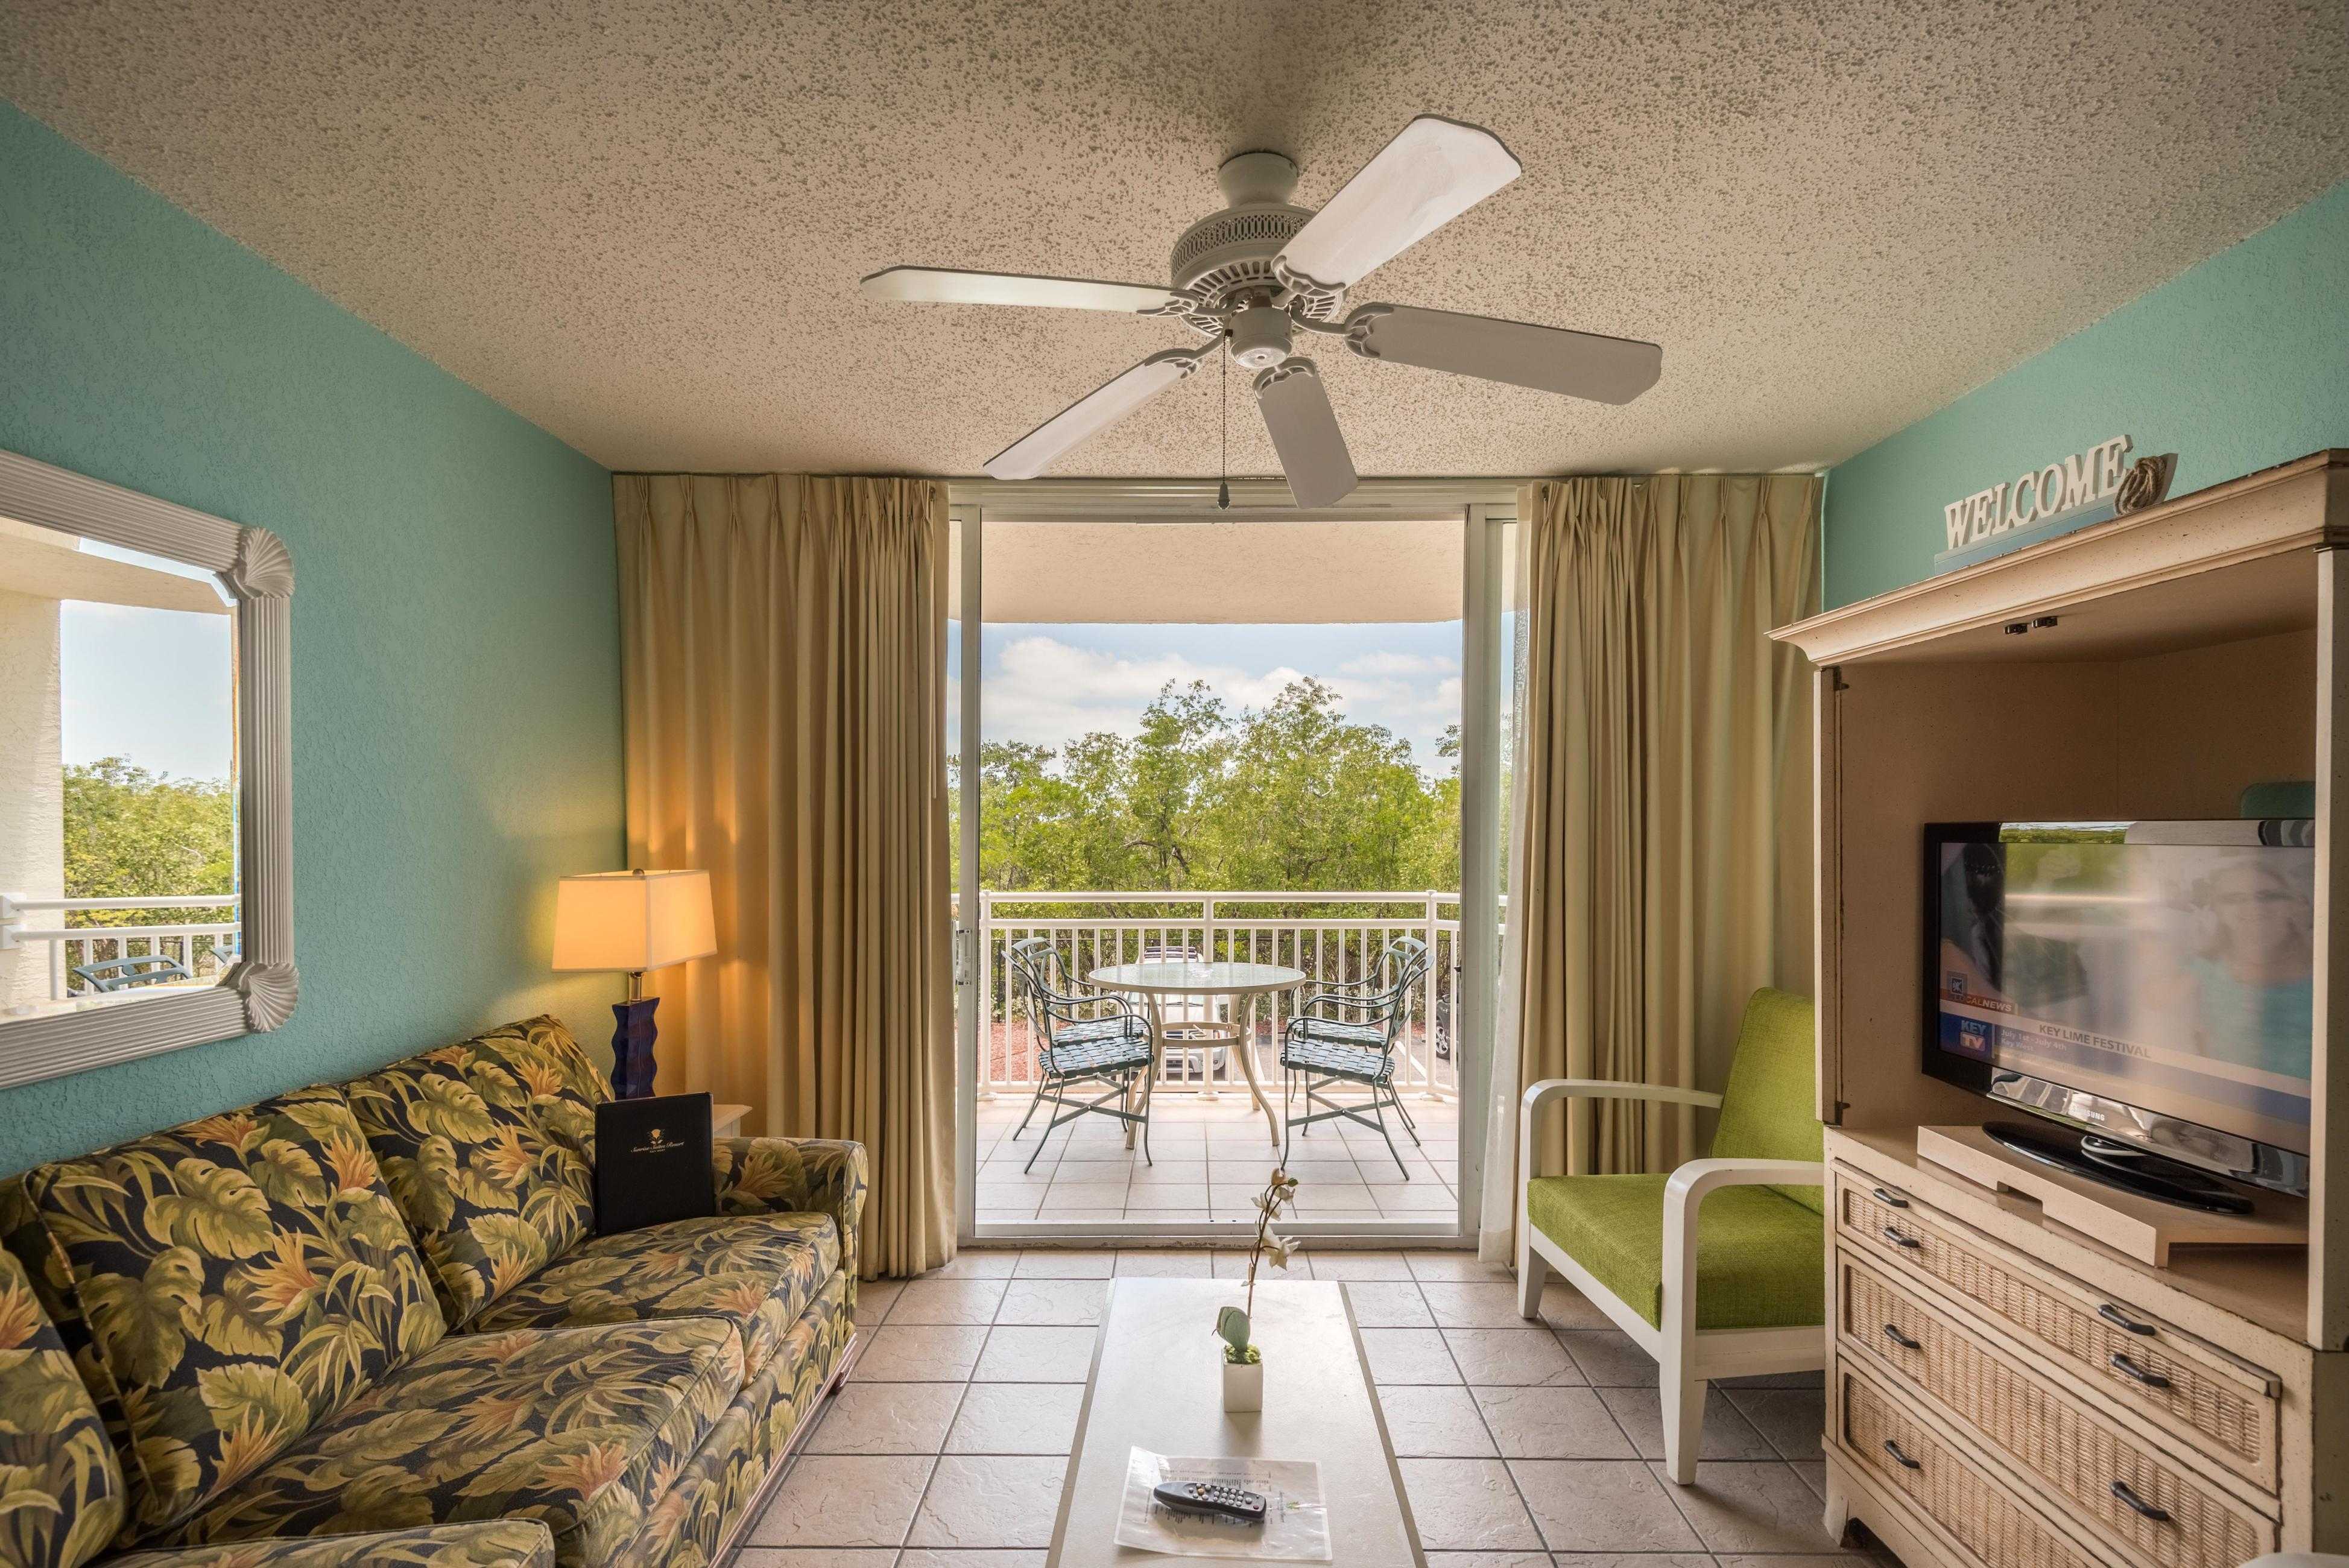 Property Image 1 - Sunrise Suites - Grand Bahama Suite 106